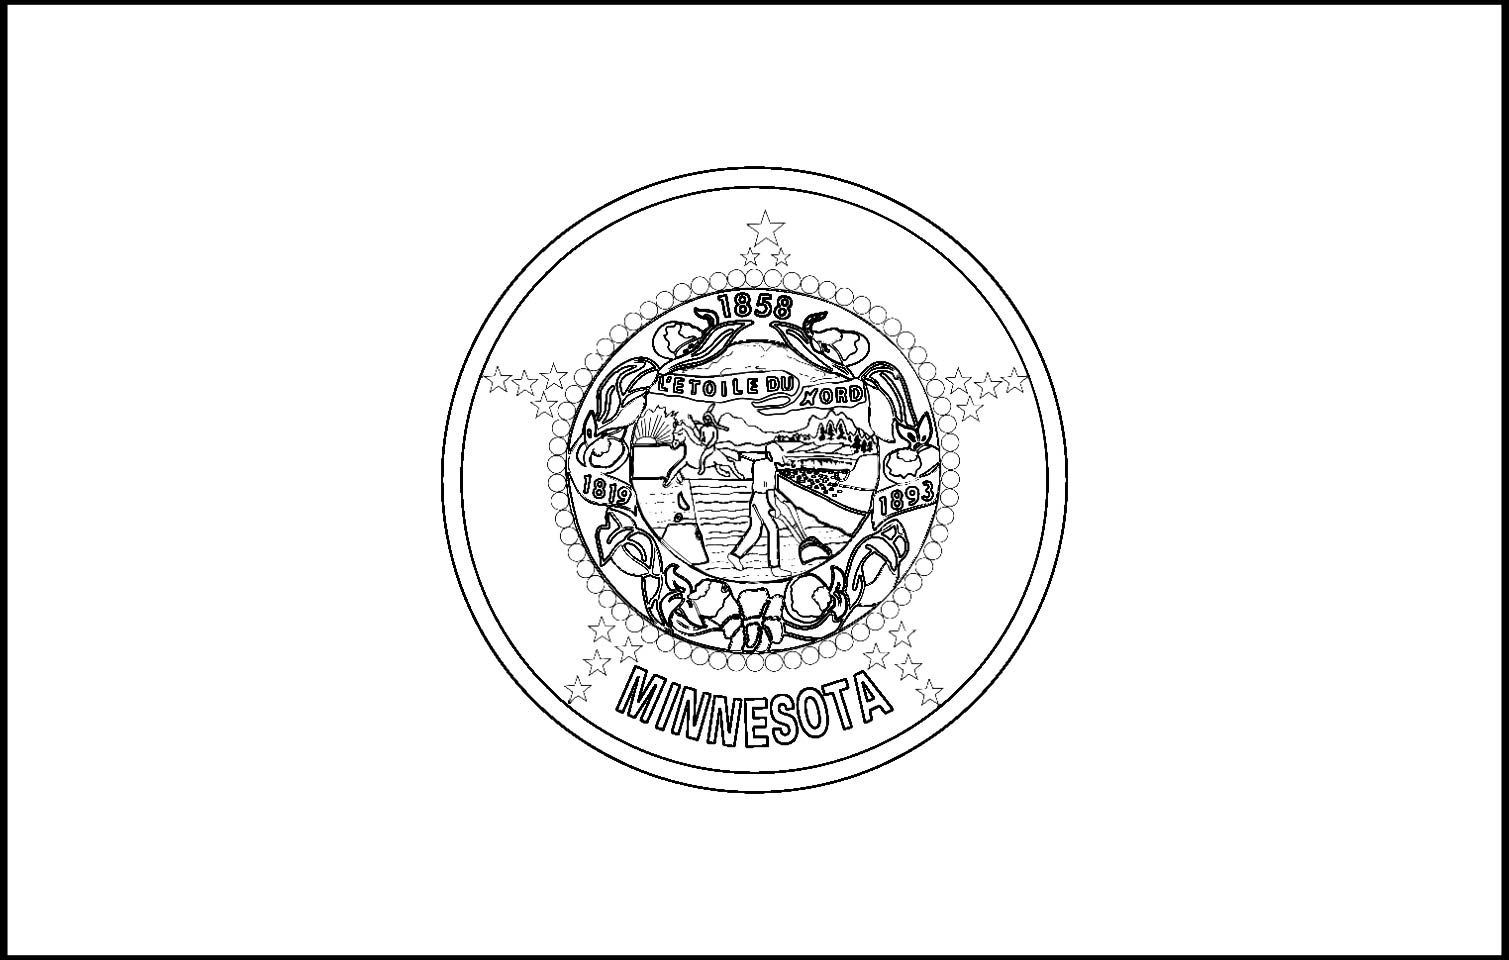 Mn state flag coloring page coloring pages for Minnesota state flag coloring page